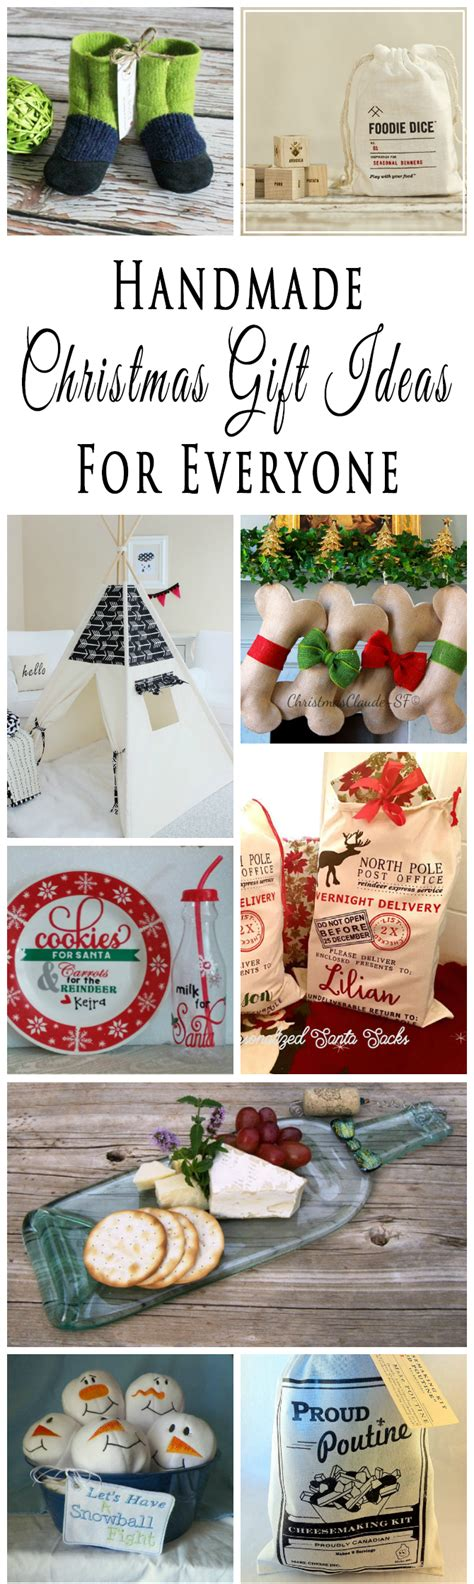 Handmade Gift Ideas For - handmade gift ideas for everyone on your list